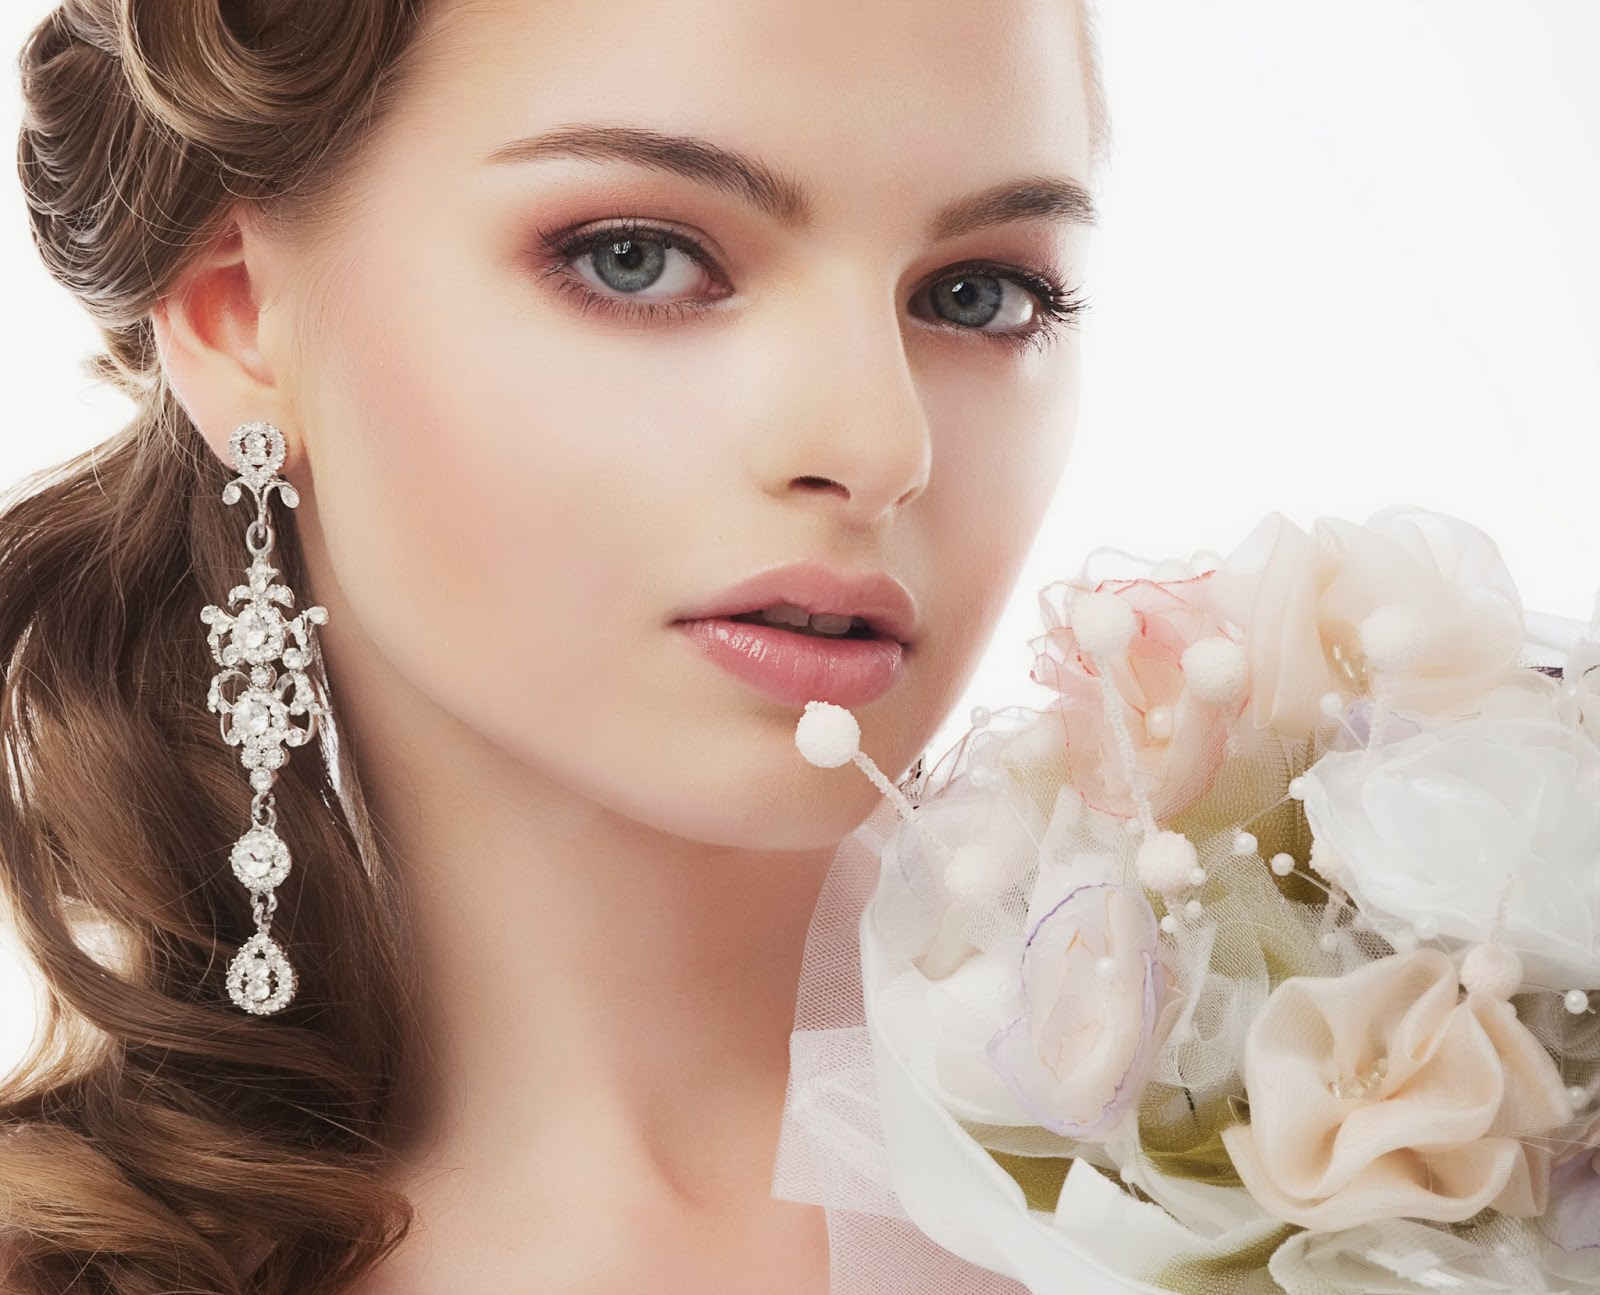 Best Eyeliner For Bridal Makeup : Memorable Wedding: The Best Wedding Makeup Tips